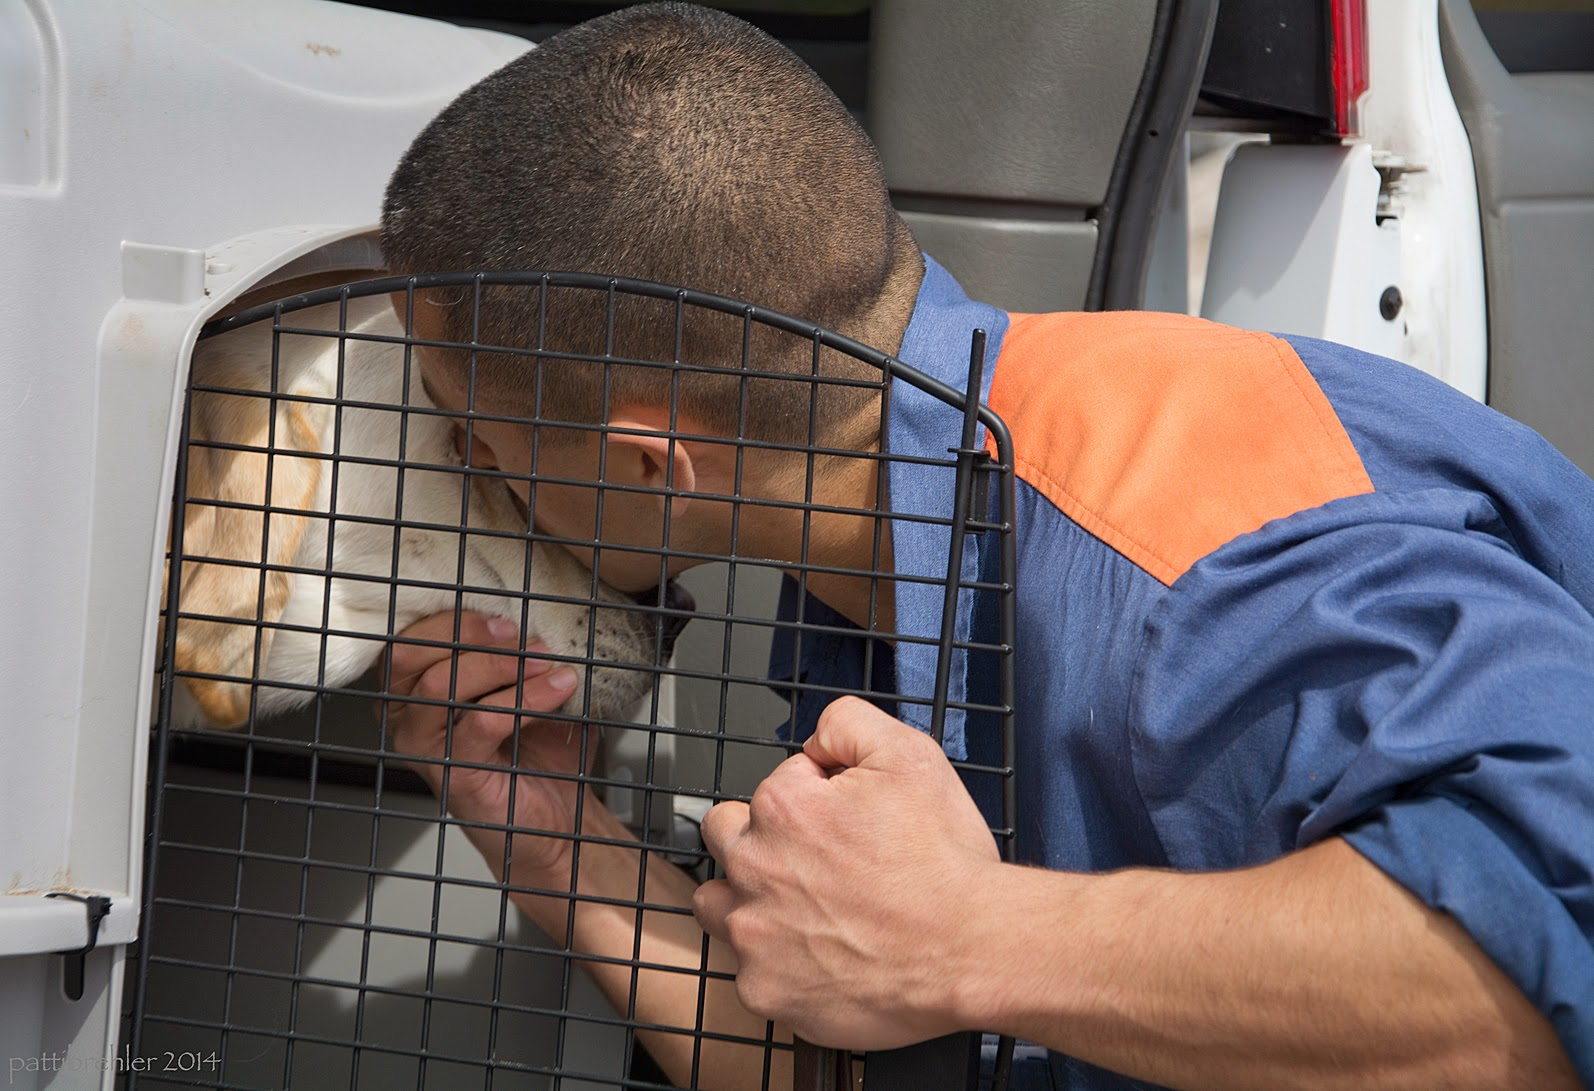 The man in the prison blue uniform is leaning in toward a yellow lab that is inside a dog airline crate. The man is gripping the wire door with his left hand and holding the jaw of the lab with his right hand, his face pressed against the face of the dog.